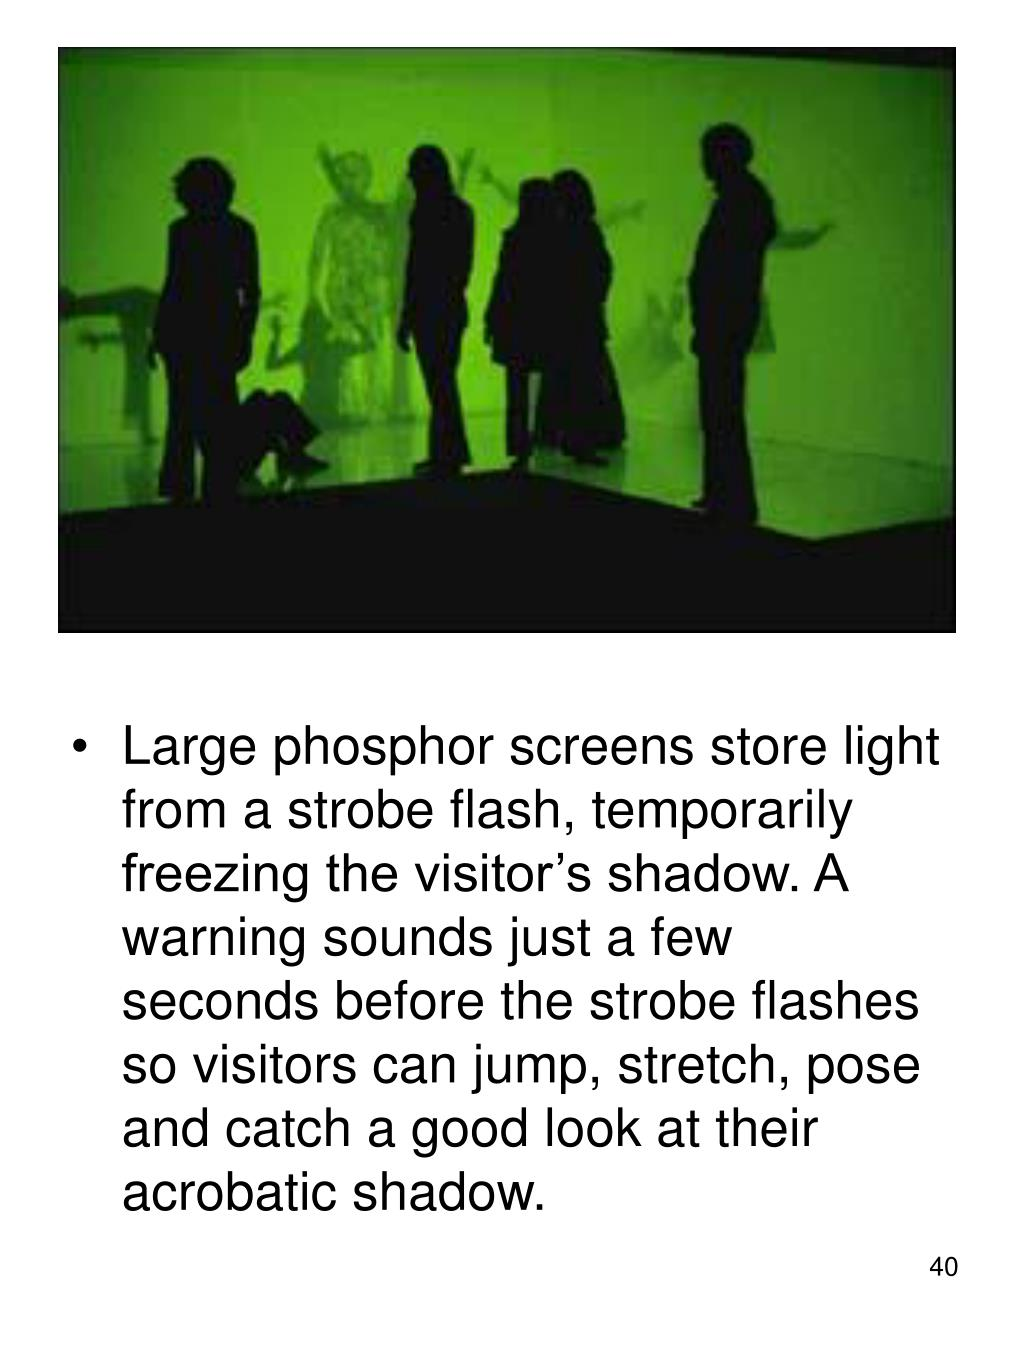 Large phosphor screens store light from a strobe flash, temporarily freezing the visitor's shadow. A warning sounds just a few seconds before the strobe flashes so visitors can jump, stretch, pose and catch a good look at their acrobatic shadow.